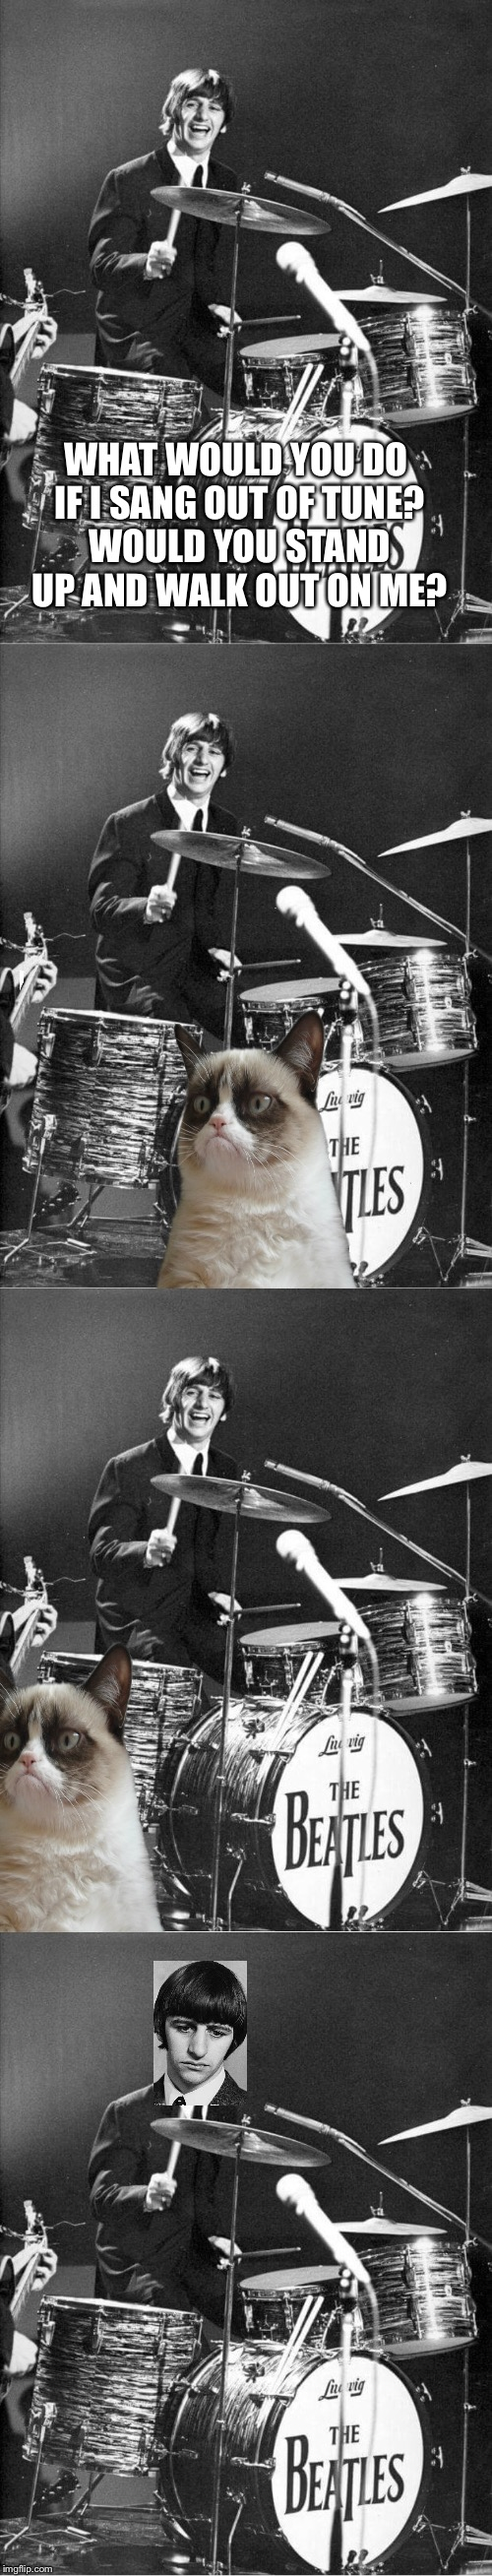 Ringo plays for grumpy cat | WHAT WOULD YOU DO IF I SANG OUT OF TUNE? WOULD YOU STAND UP AND WALK OUT ON ME? | image tagged in the beatles,grumpy cat | made w/ Imgflip meme maker